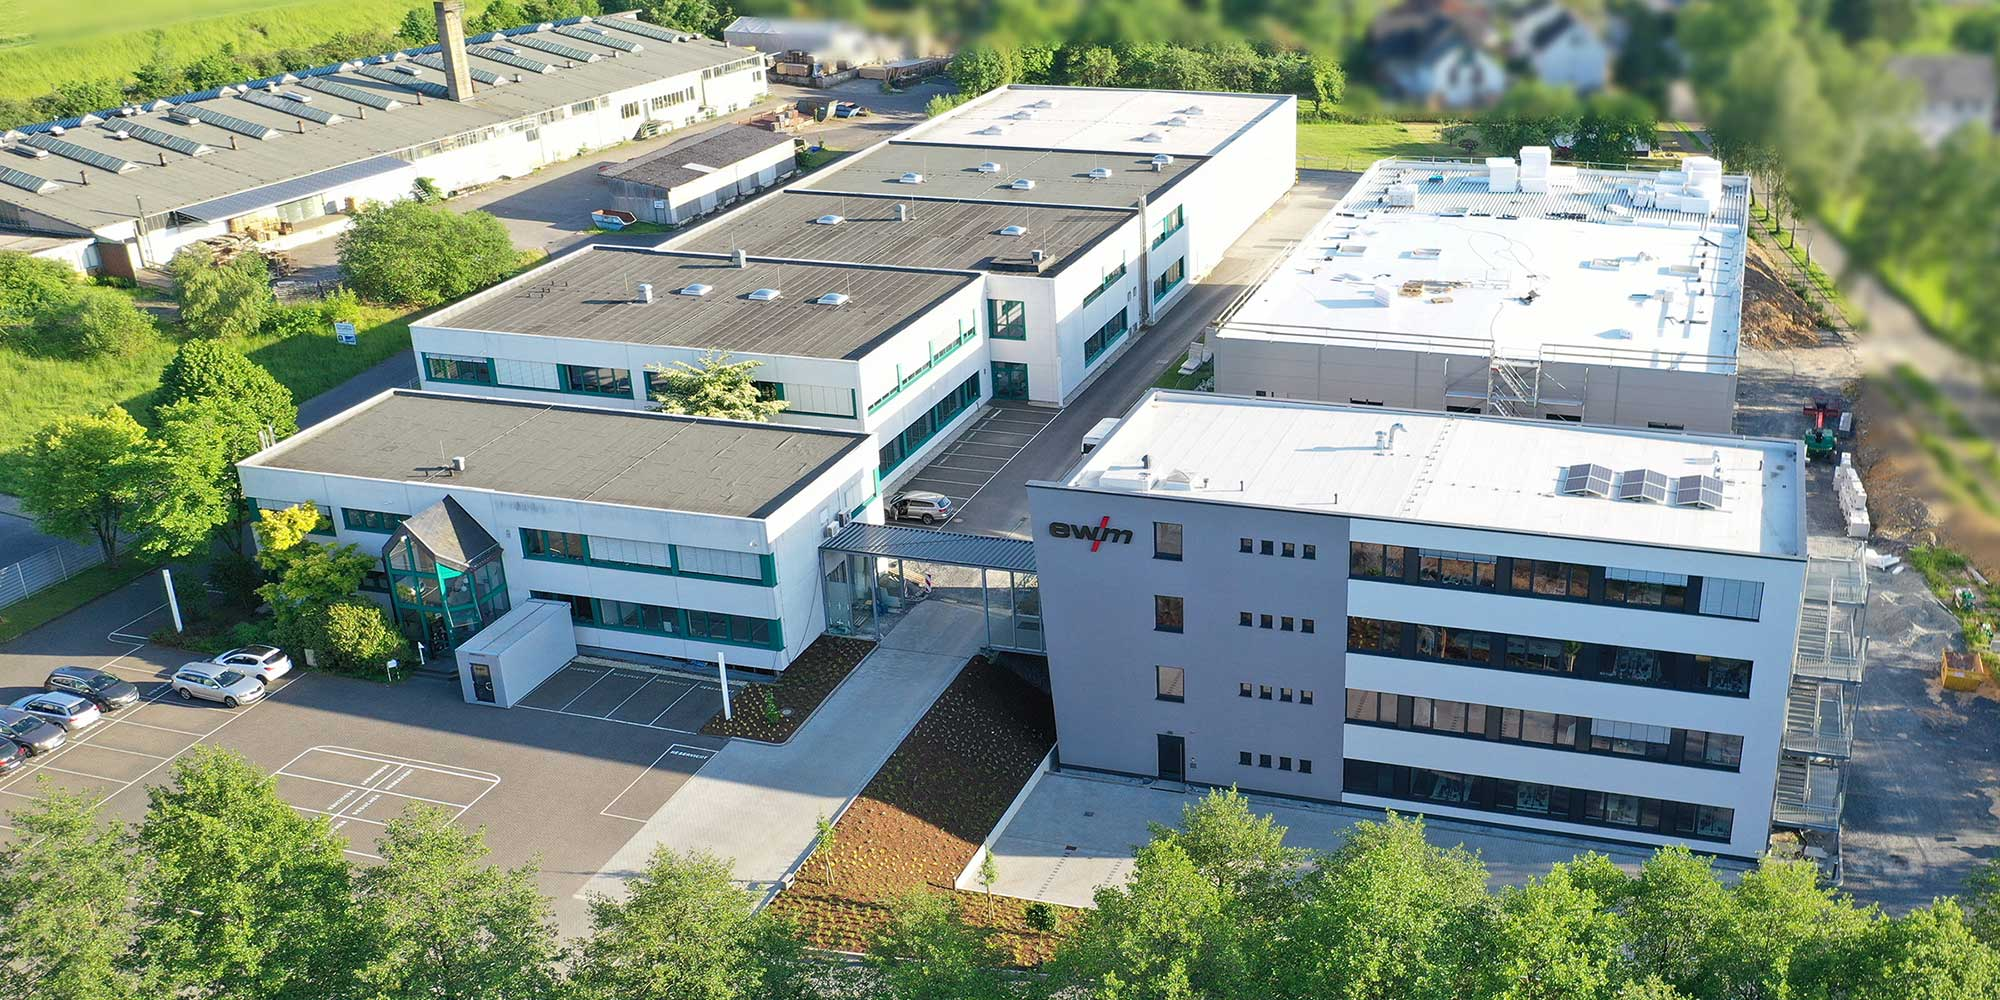 EWM AG expanded its headquarters in the Westerwald with two new buildings